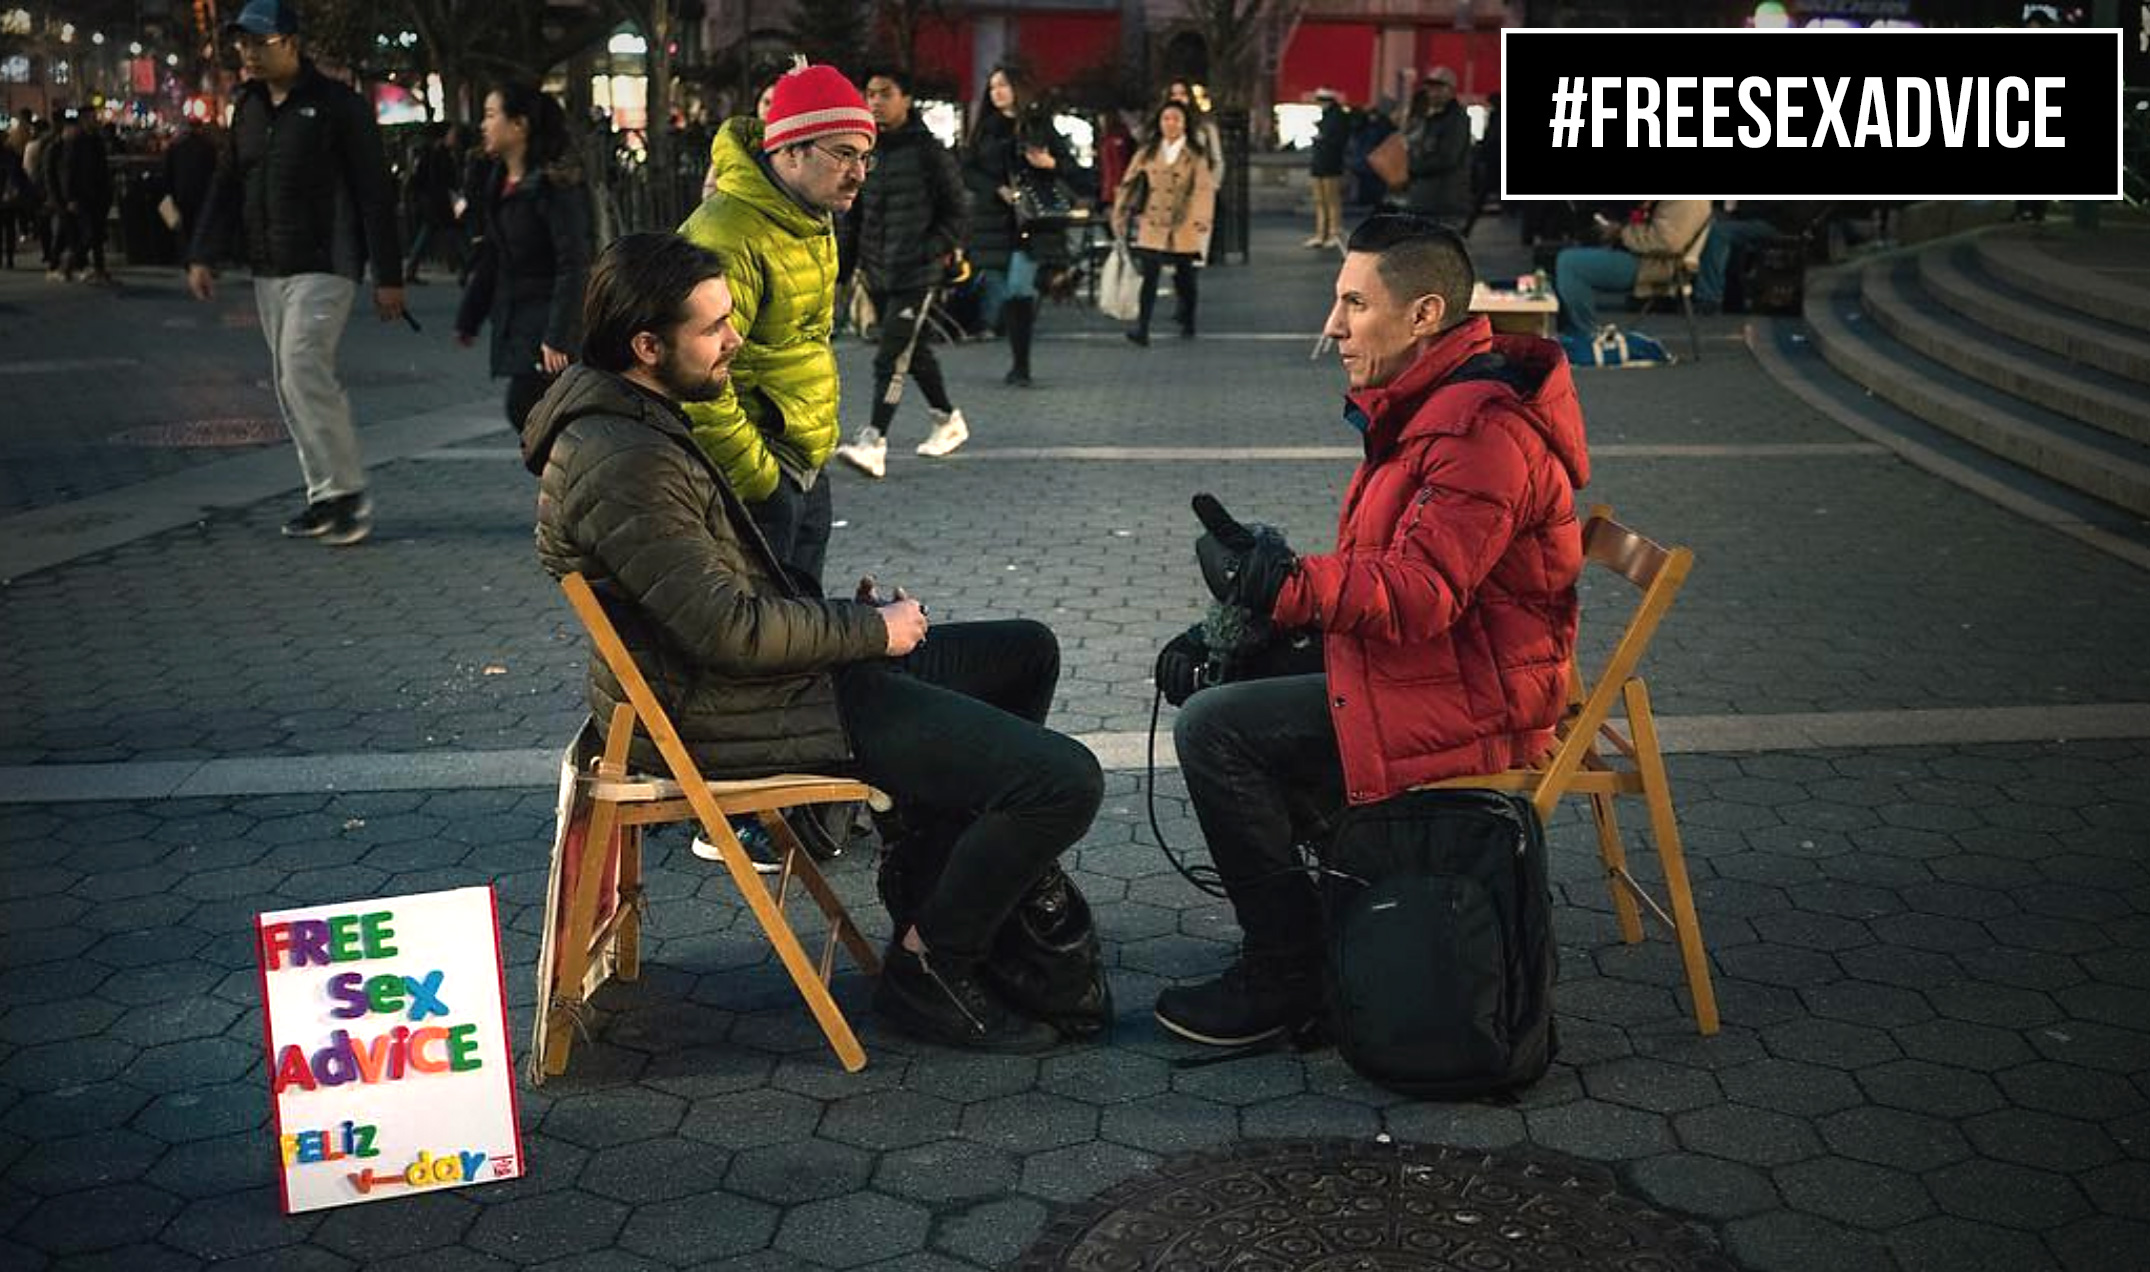 FREE SEX ADVICE — SINCE 2008  Something on your mind? Come meet Francisco in a New York City park where he offers #FreeSexAdvice to strangers on weekends. Ask whatever's on your mind about sex, dating, and identity, and get ready for a conversation that's lively, down-to-earth, and completely tailored to you.  Want to hear about Francisco's most surprising conversations from the park? Sign up to get the scoop below.